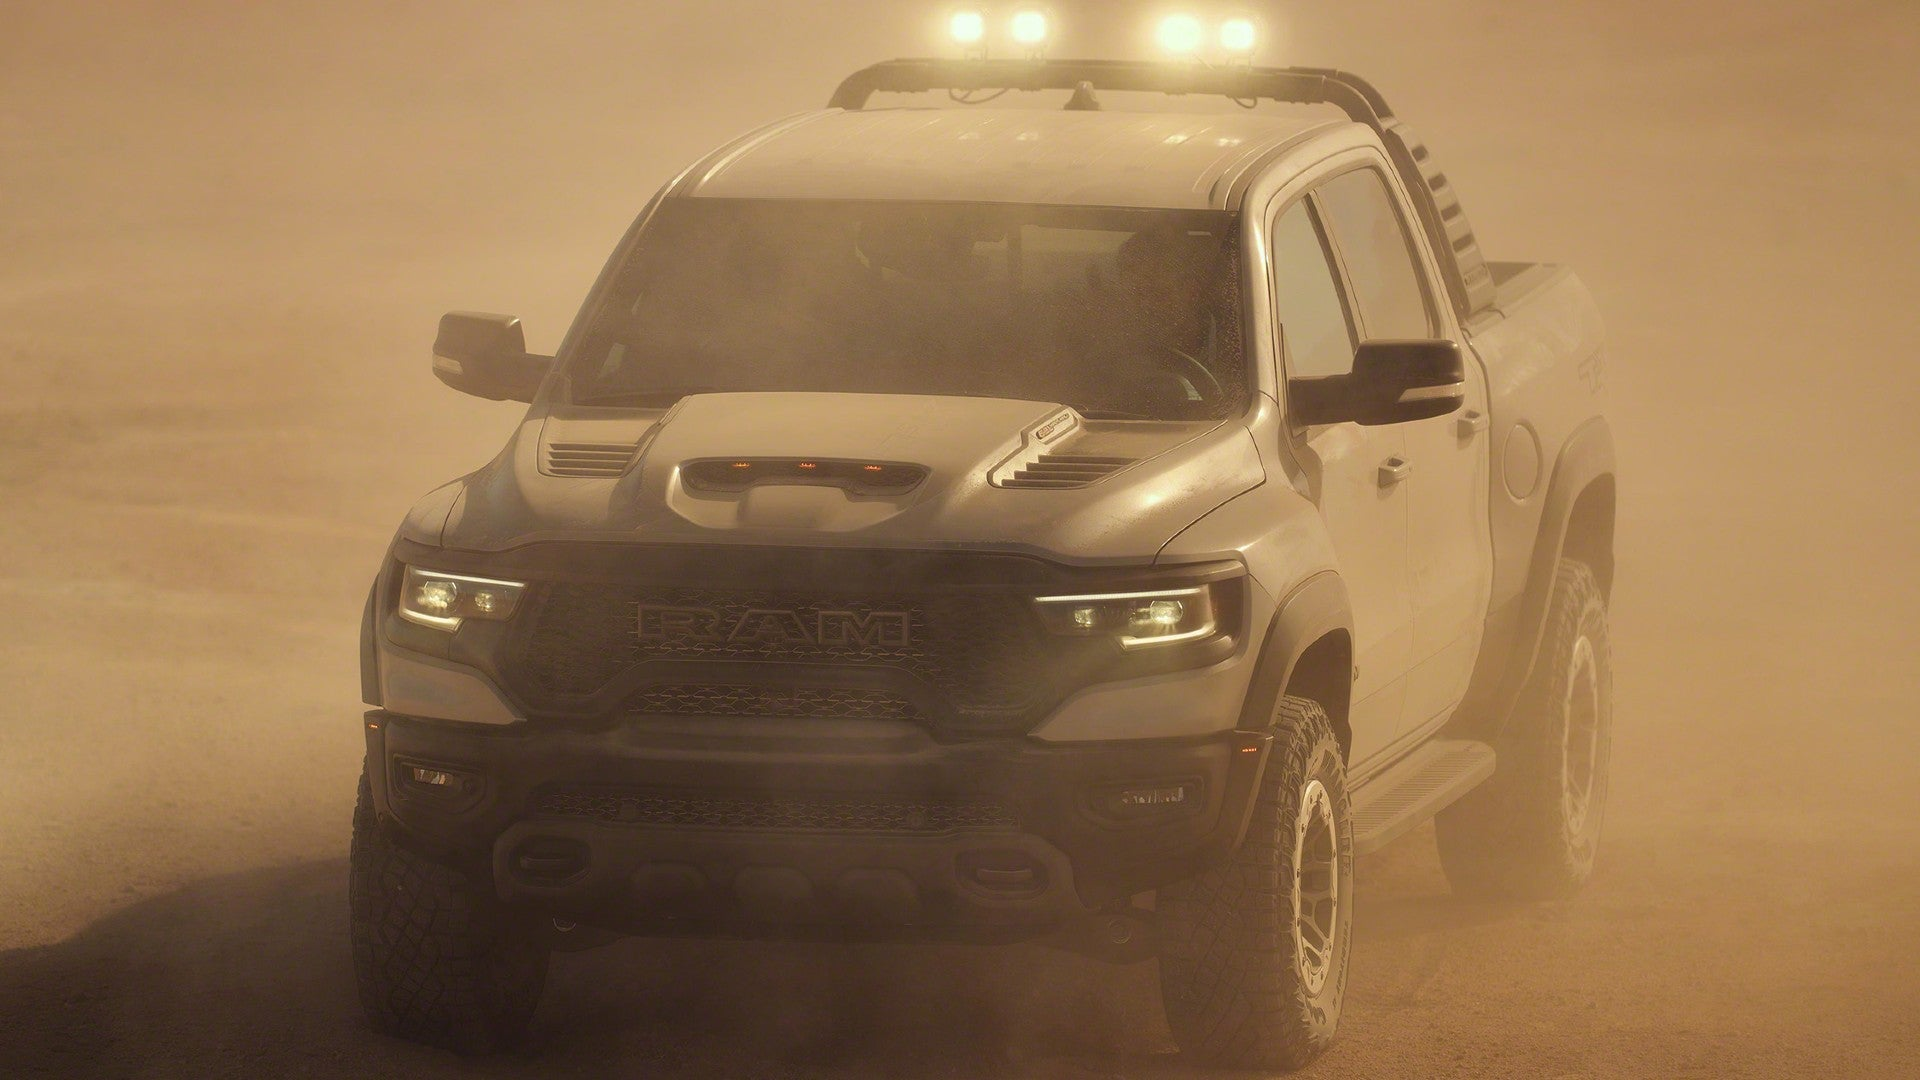 2021 Ram Trx The 702 Hp Hellcat Powered Truck That S Been Years In The Making